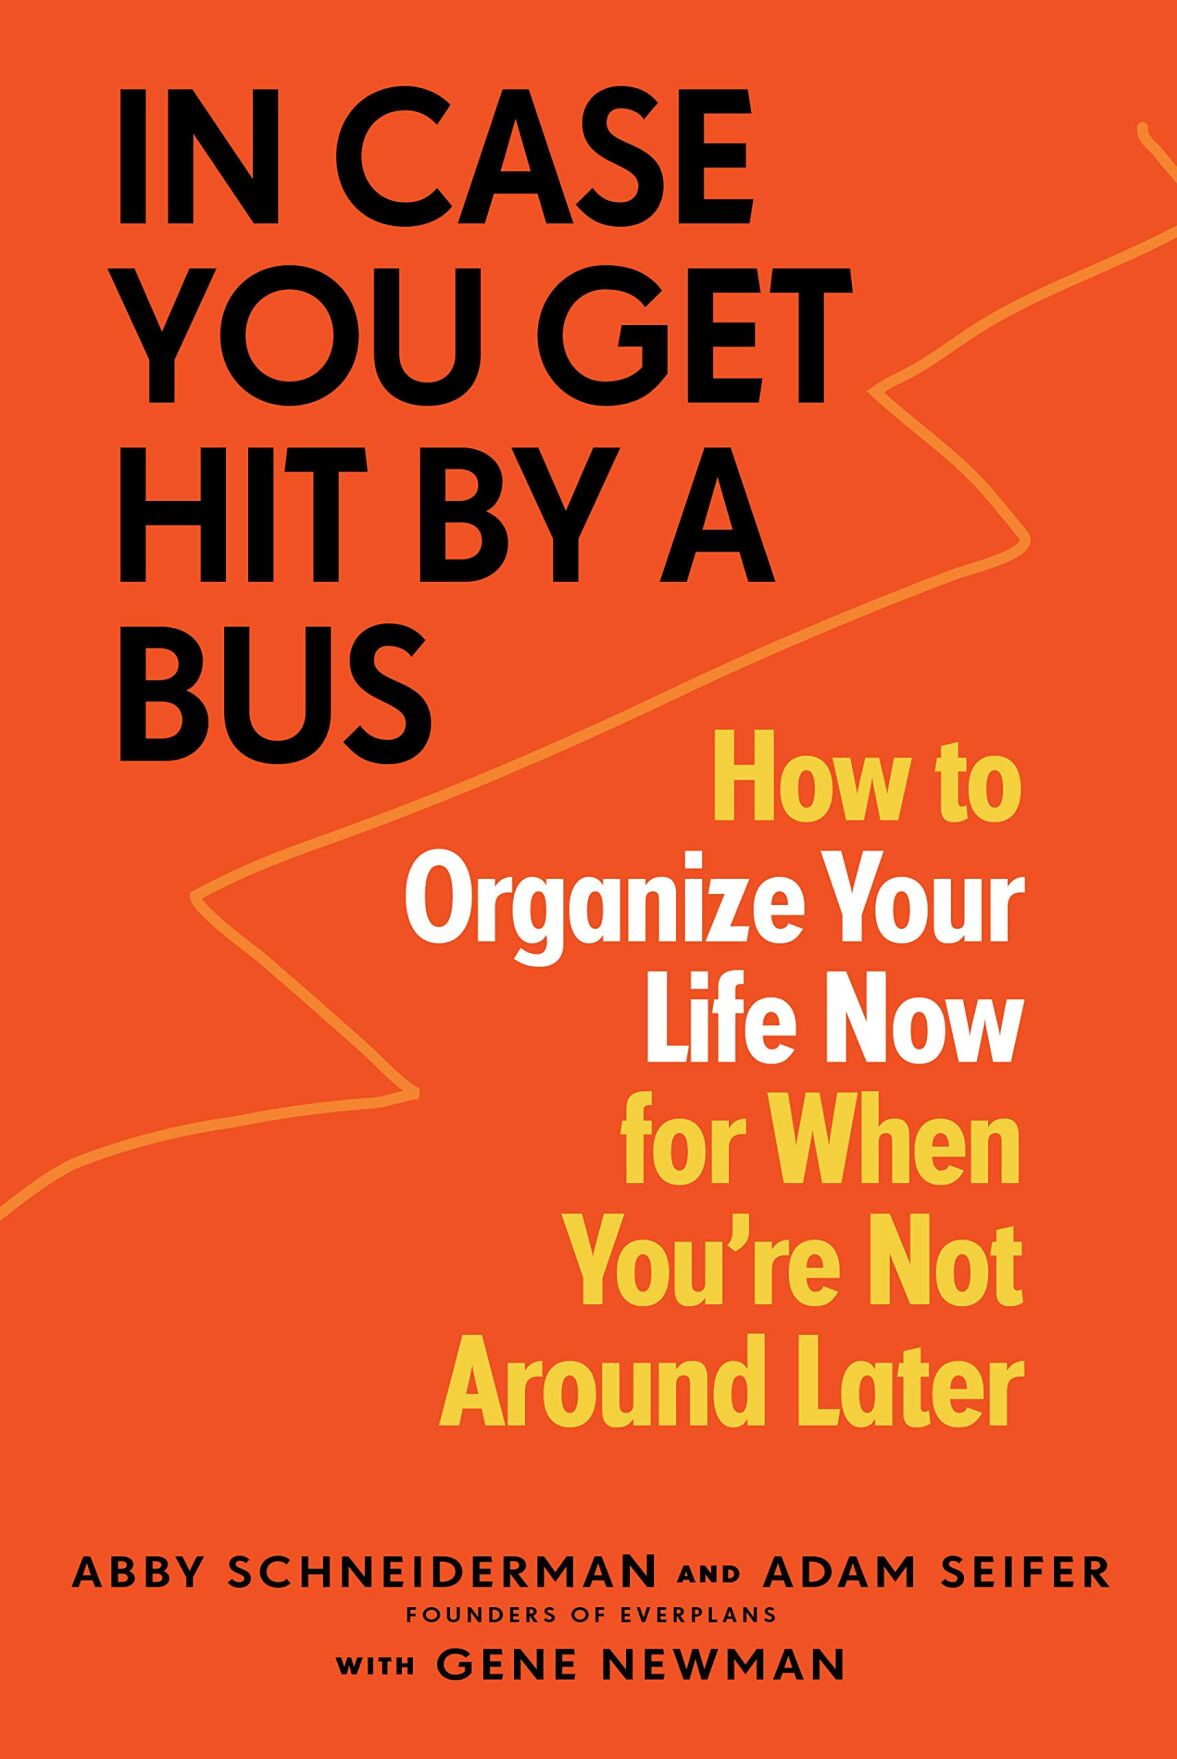 'In Case You Get Hit By a Bus' book cover